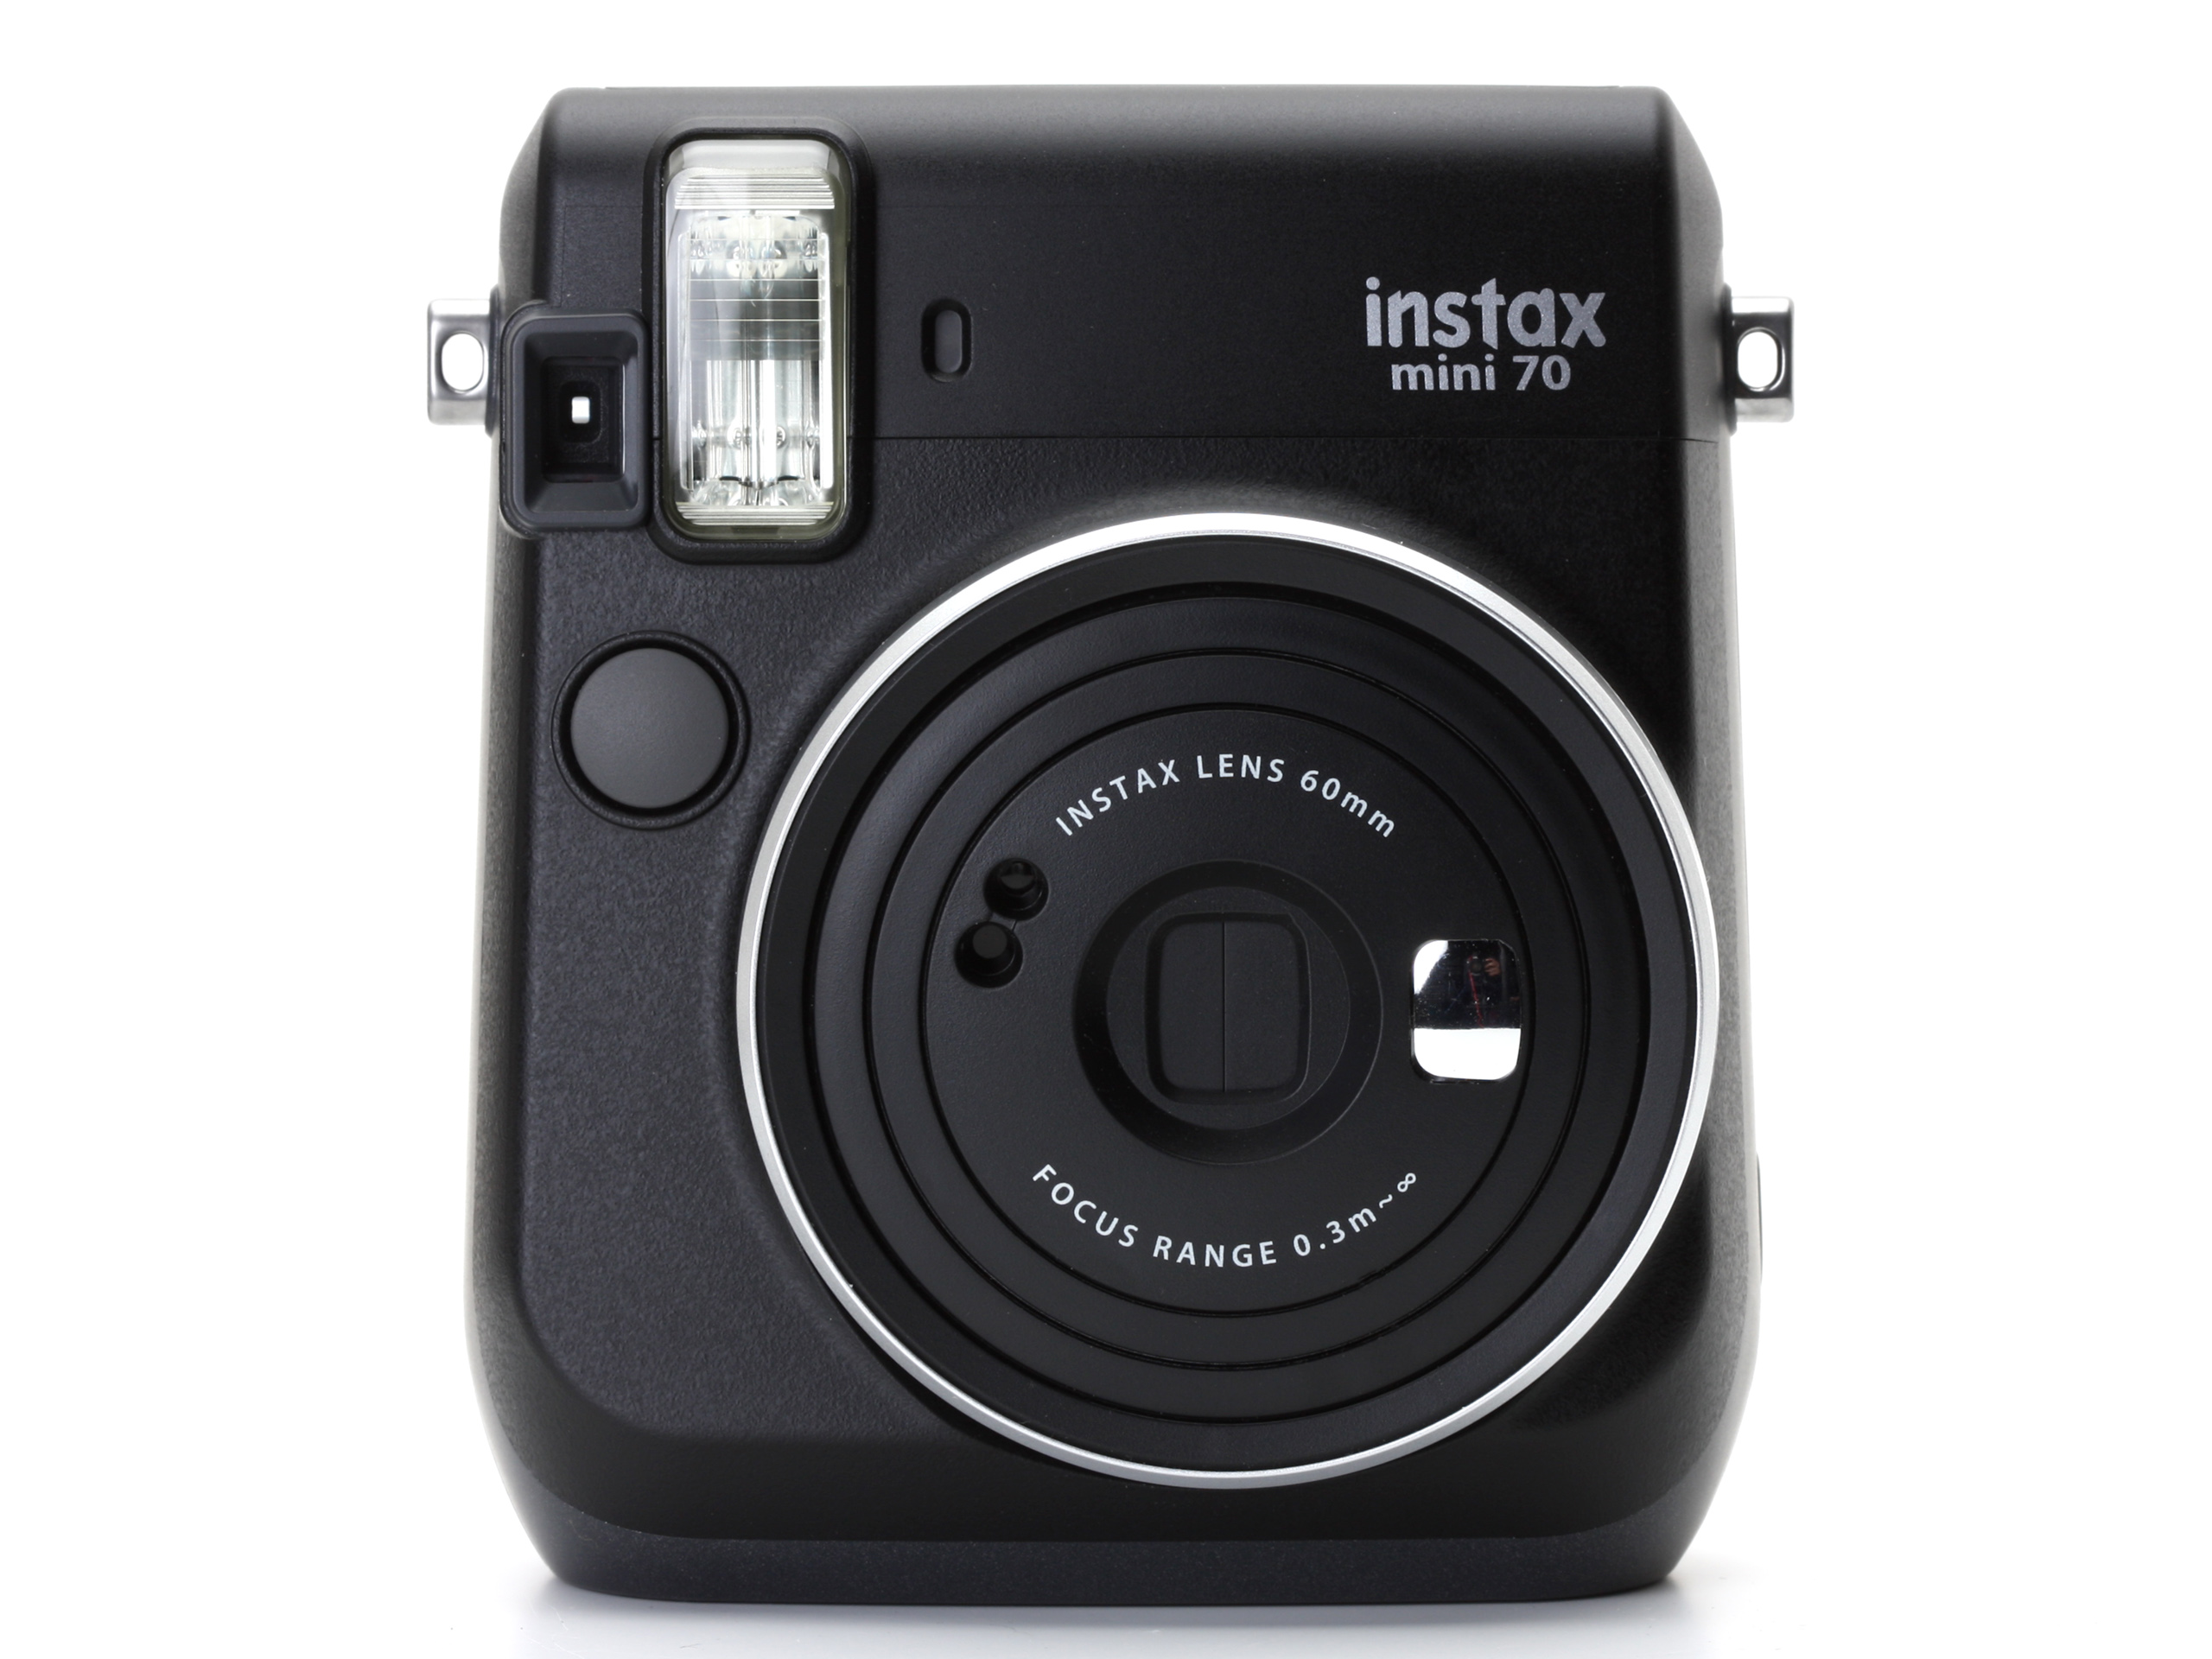 The Instax mini 70 is a more recent release than the mini 8 and, as a result, has updated looks and a few more features than the 8.